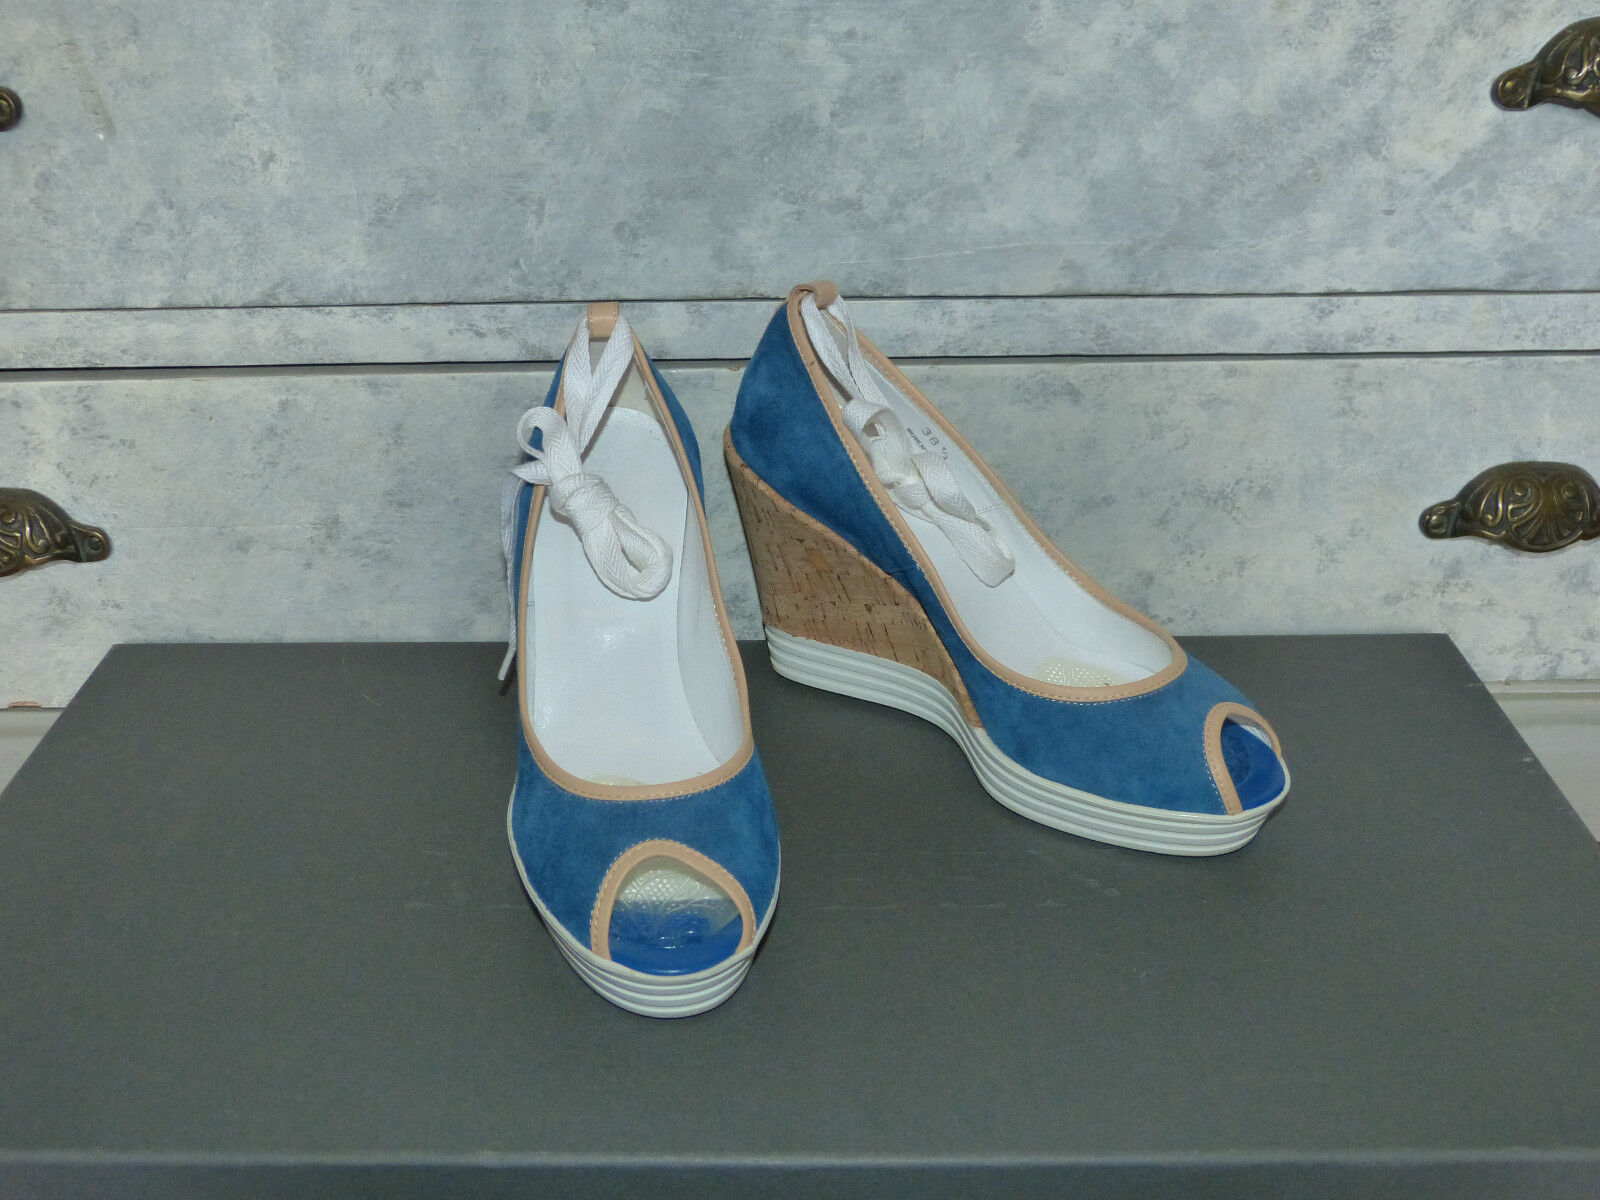 hogan sandals blueee beige and white size 38,5 like new